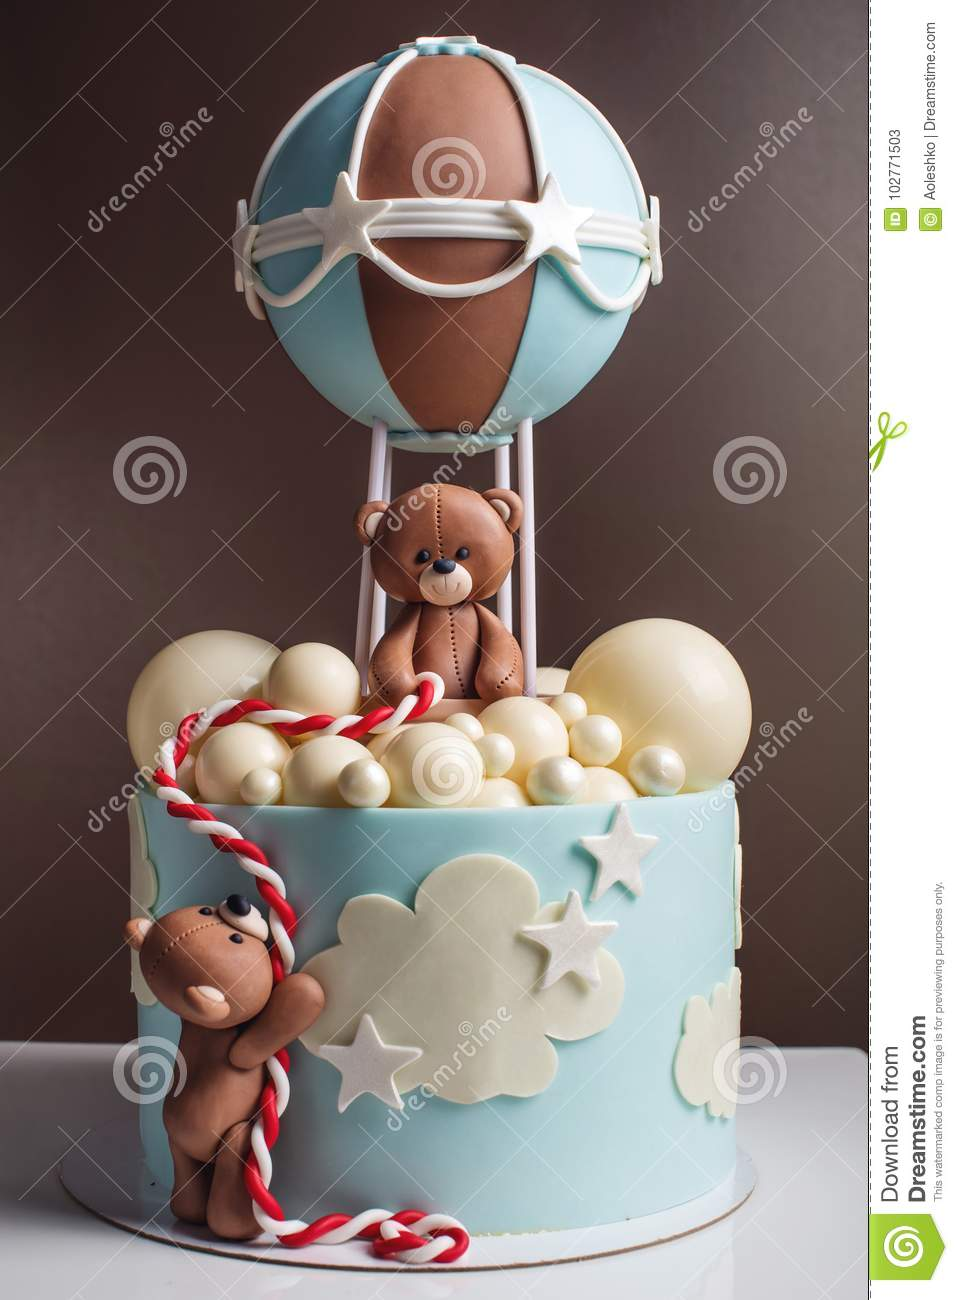 Beautiful Decorative Cake For A Child Bears Fly In A Balloon